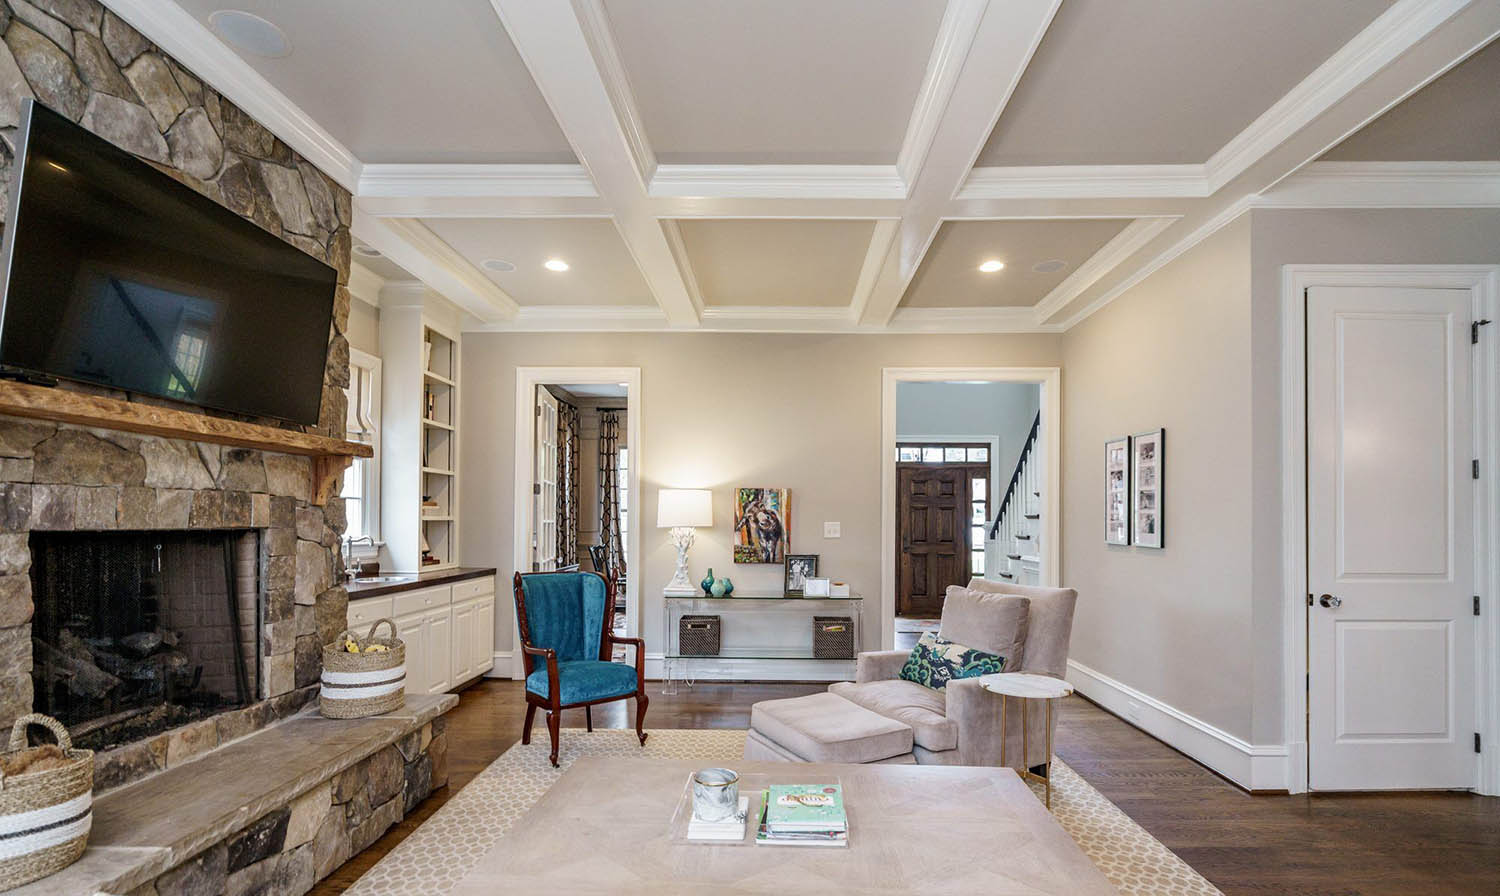 Living room coffered ceiling. 2 Tone design. White beams with gray coffers and recessed lighting. Real stone veneer fireplace surround.